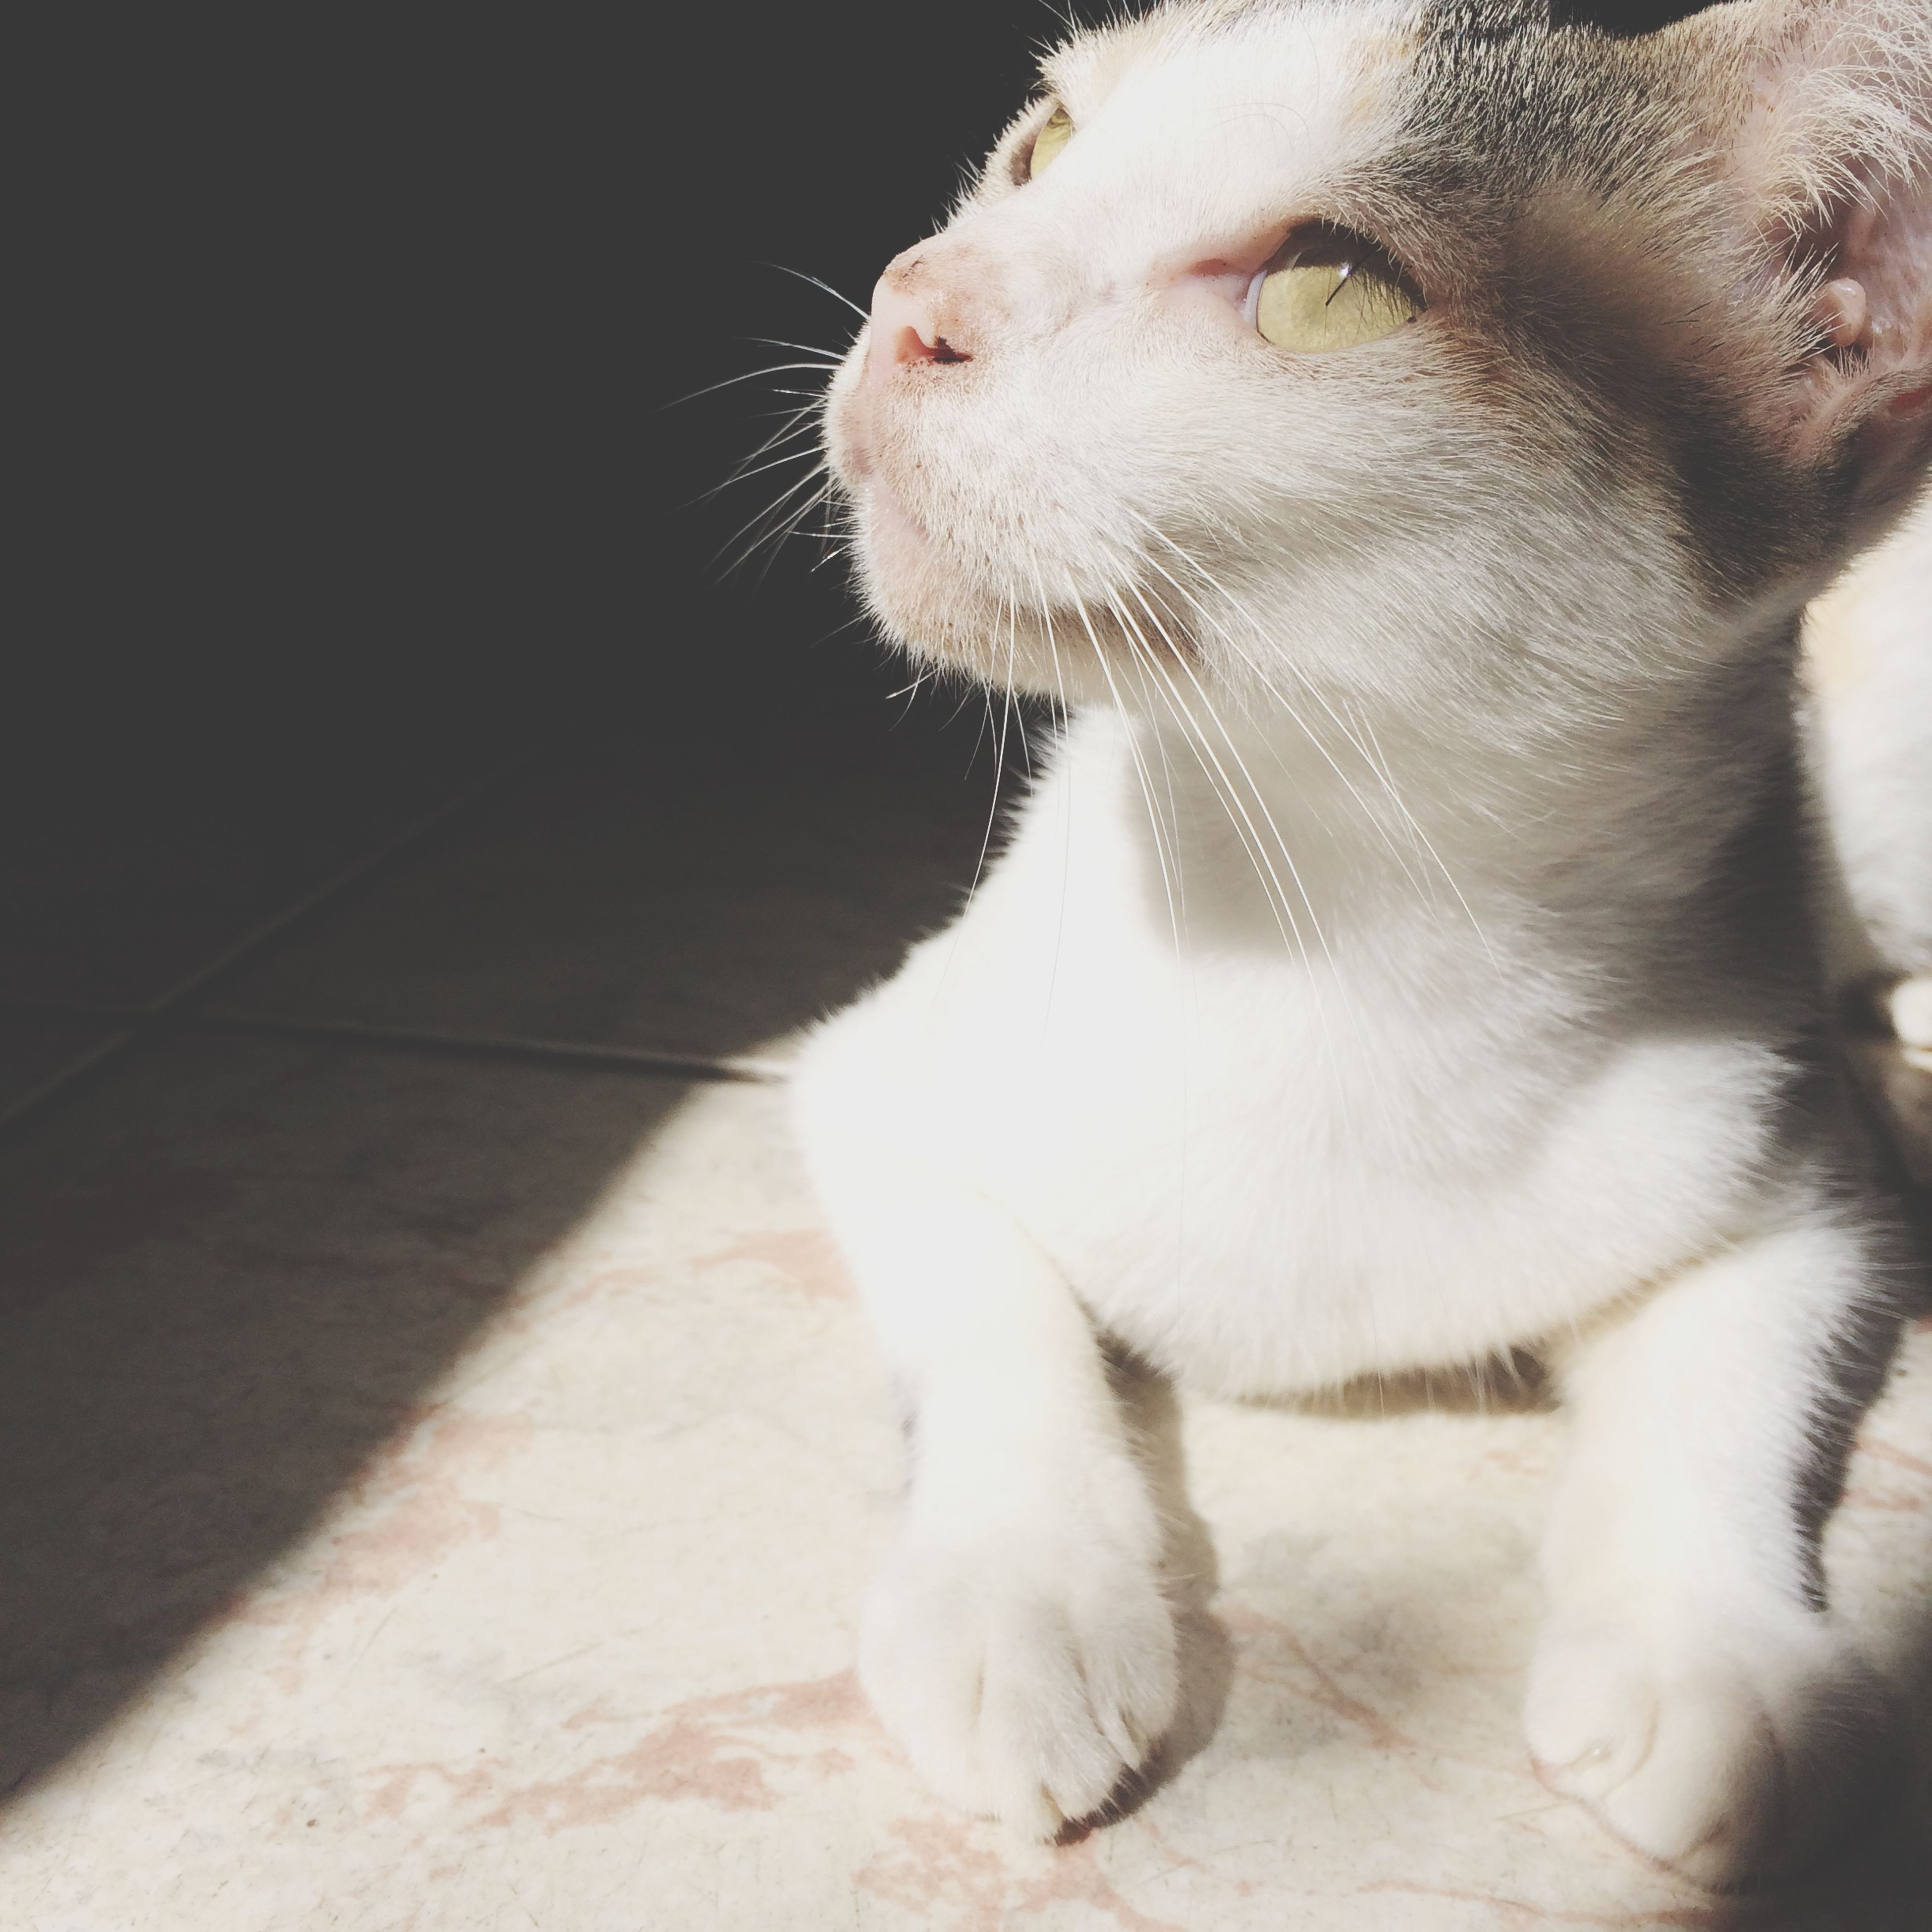 pets, domestic animals, animal themes, mammal, one animal, domestic cat, cat, feline, dog, indoors, relaxation, whisker, high angle view, close-up, sunlight, sitting, looking away, no people, day, home interior